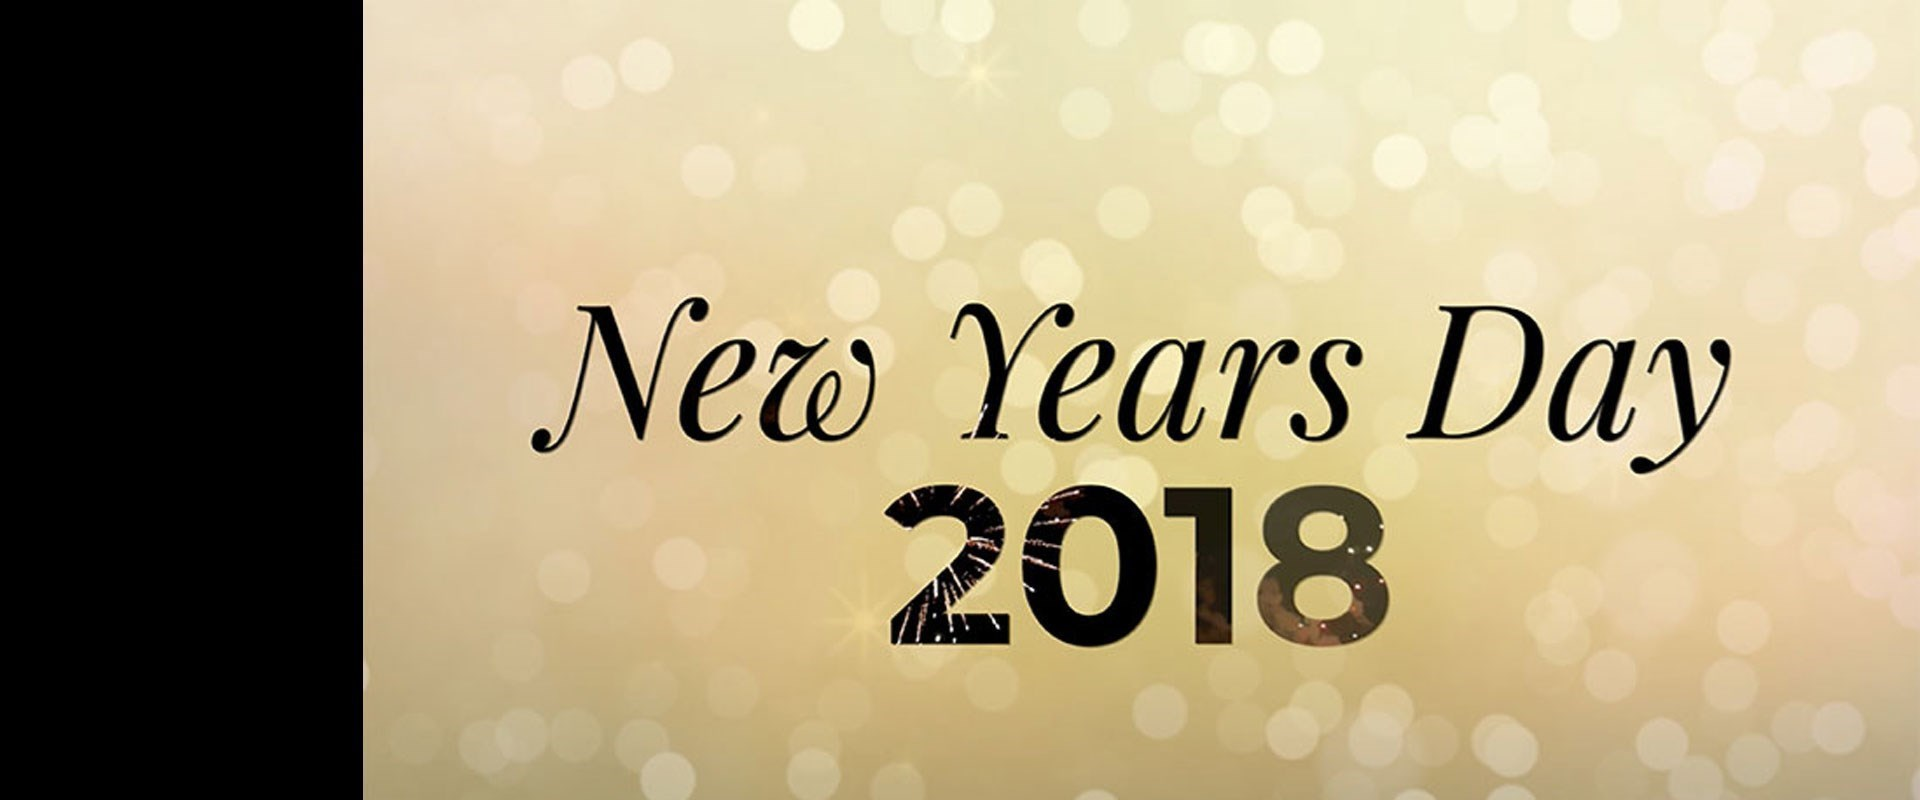 REPLAY of Prem Rawat's LIVE New Year's Day